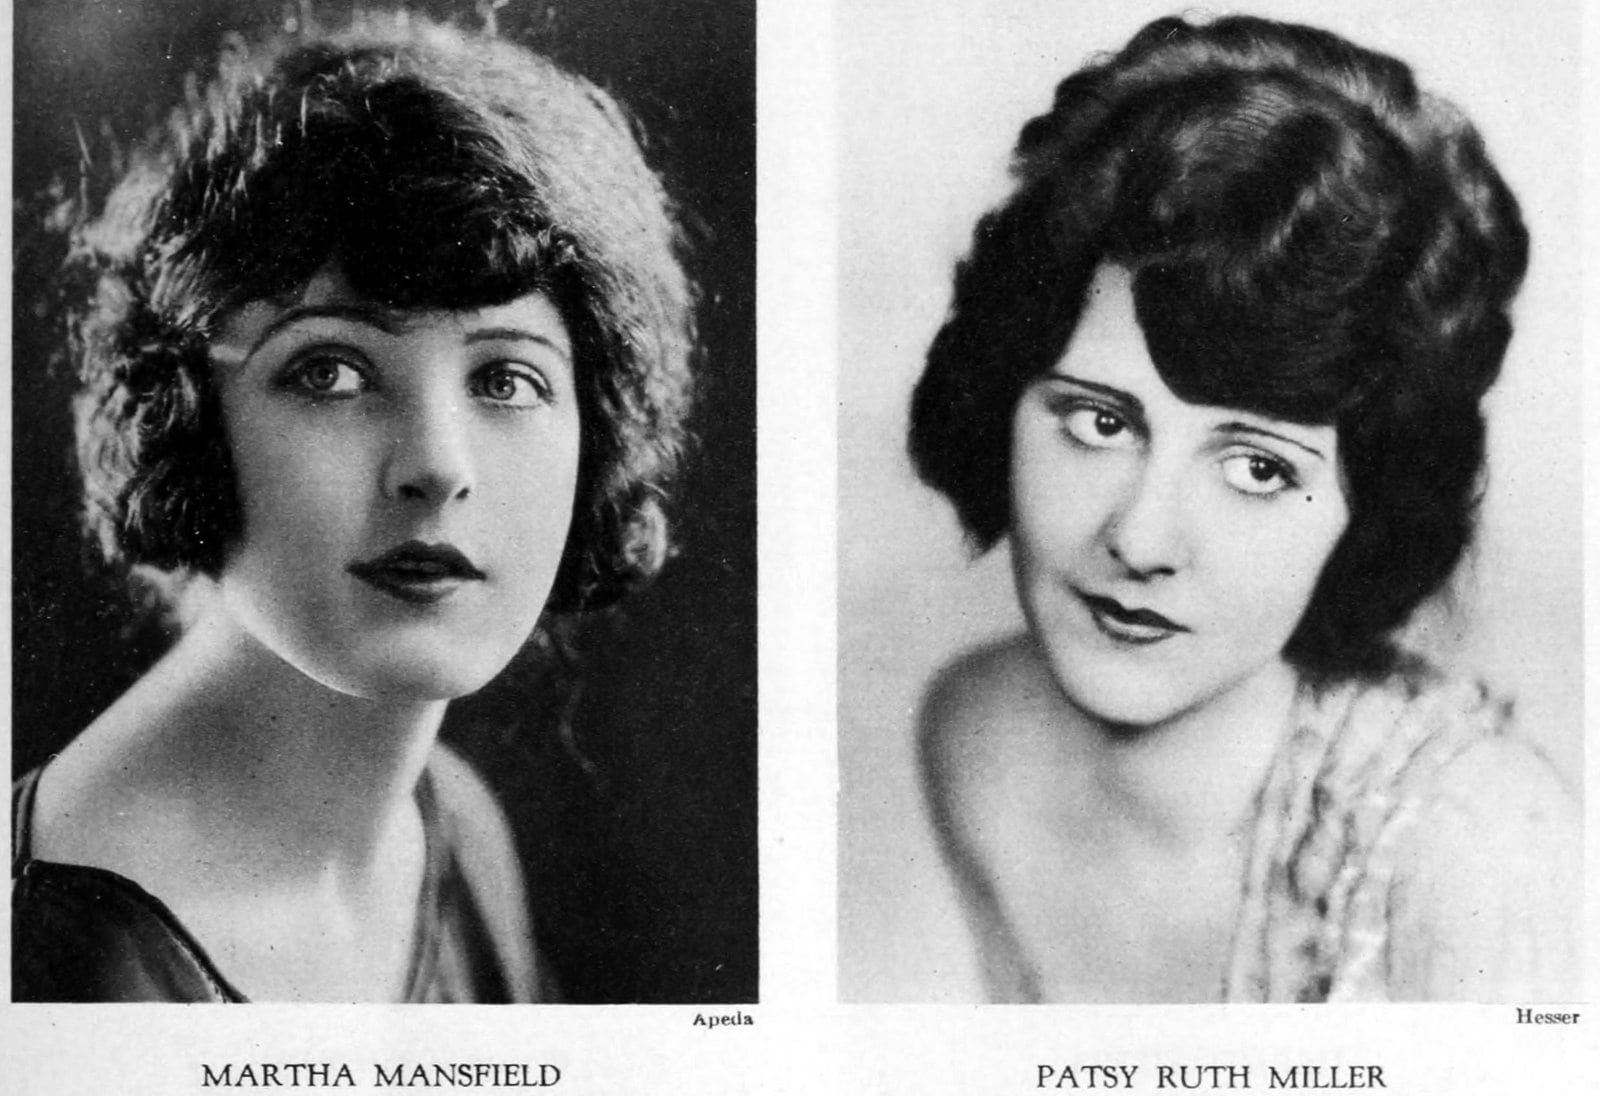 Vintage 1920s hairstyles for women - actresses Martha Mansfield and Patsy Ruth Miller